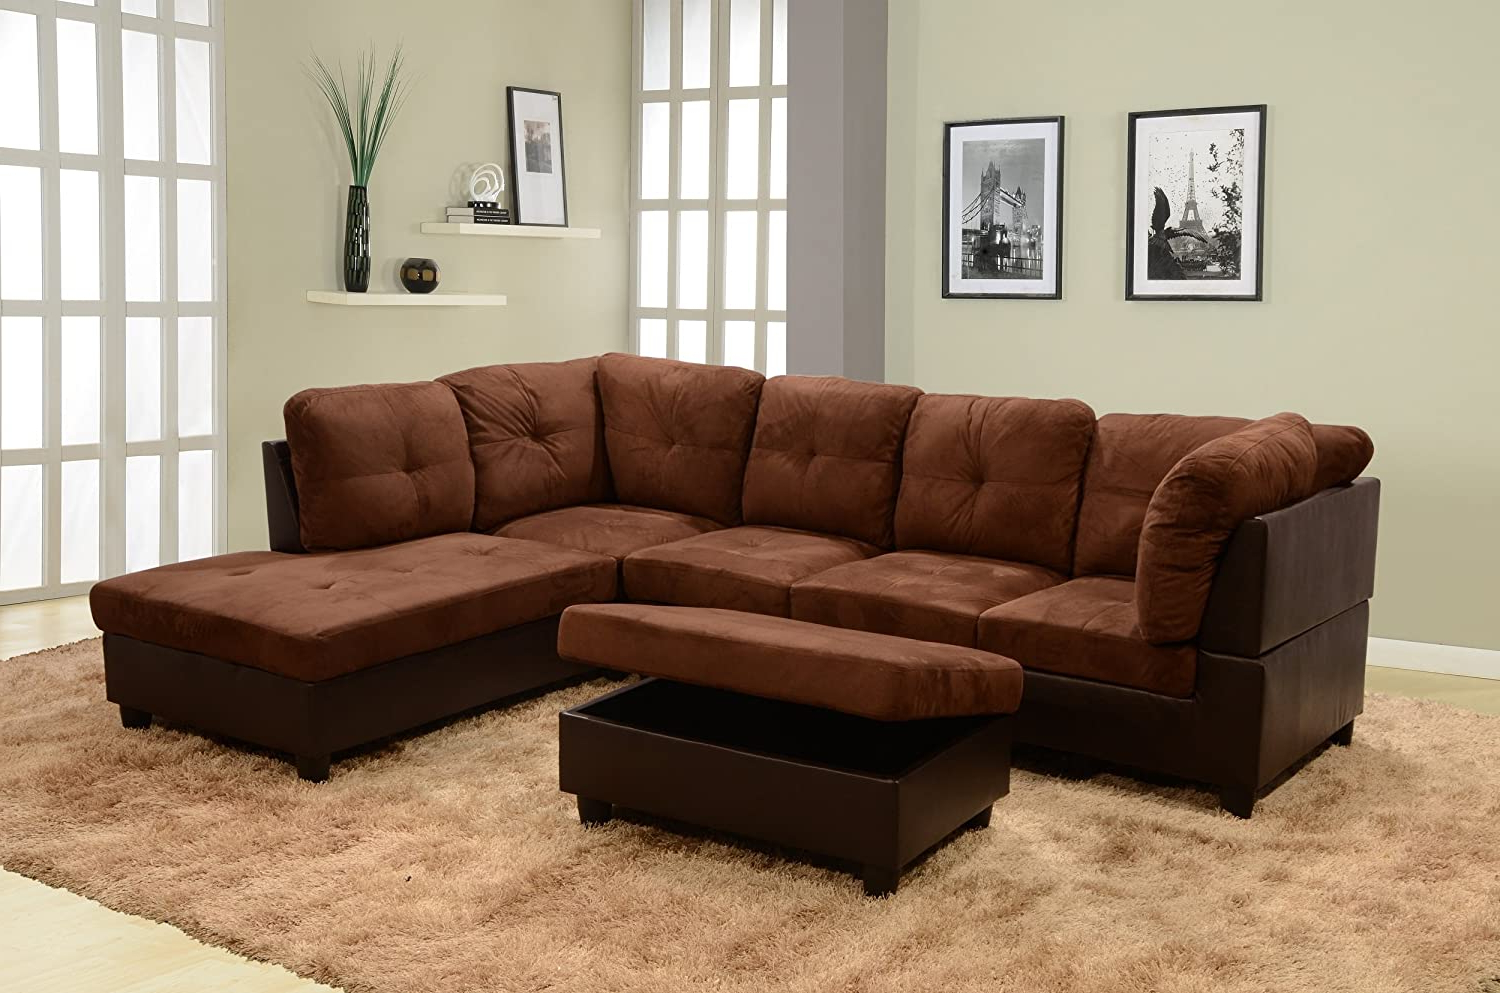 Ainehome 3 Pcs Living Room Set, Sectional Sofa Set In Most Current Monet Right Facing Sectional Sofas (View 2 of 20)